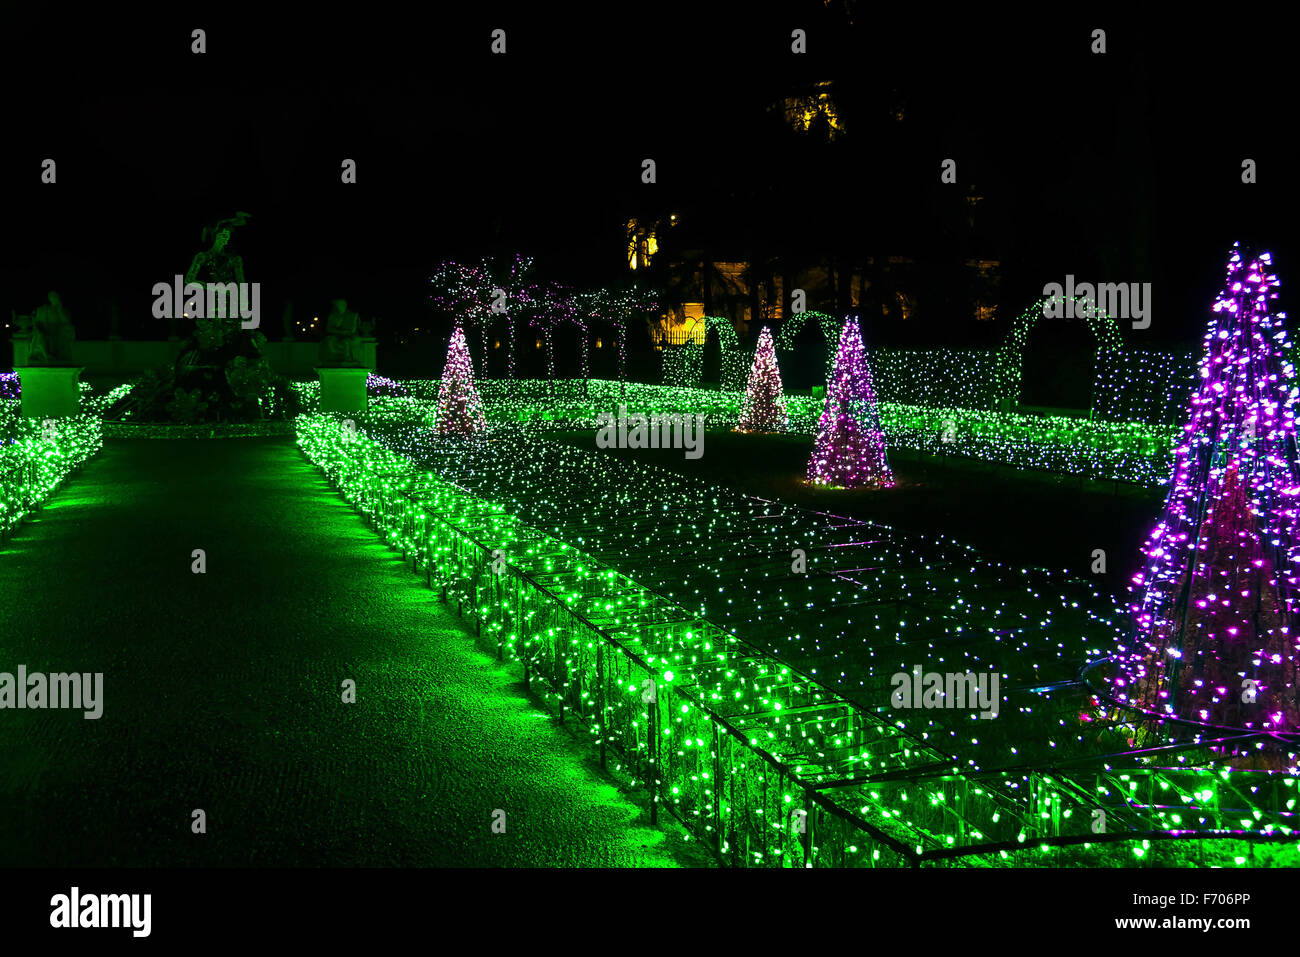 Christmas Illumination of Fir-Tree and Grass Sculptures near Road at Night - Stock Image